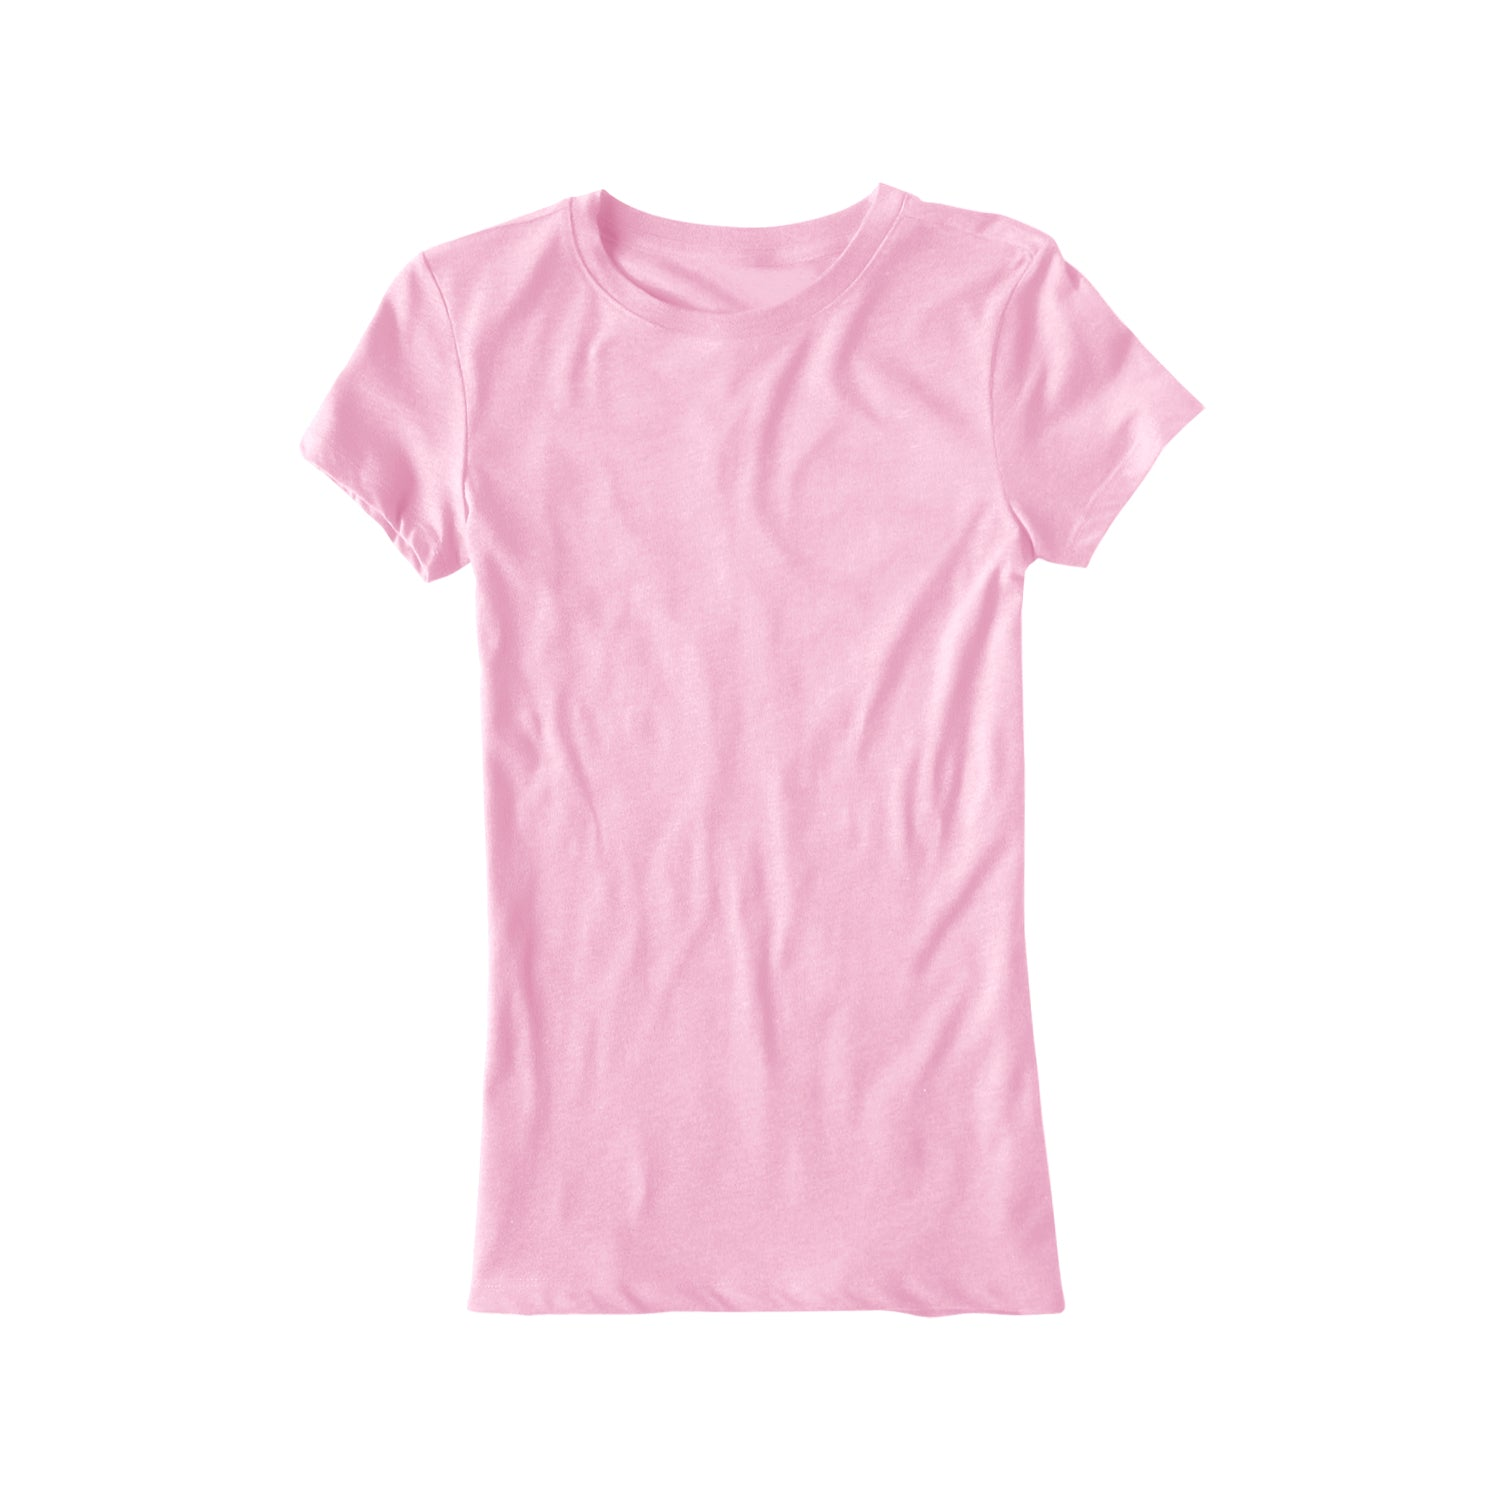 Popular Sport Single Jersey Crew Neck Tee Shirt For Women-Light Pink-BE9688